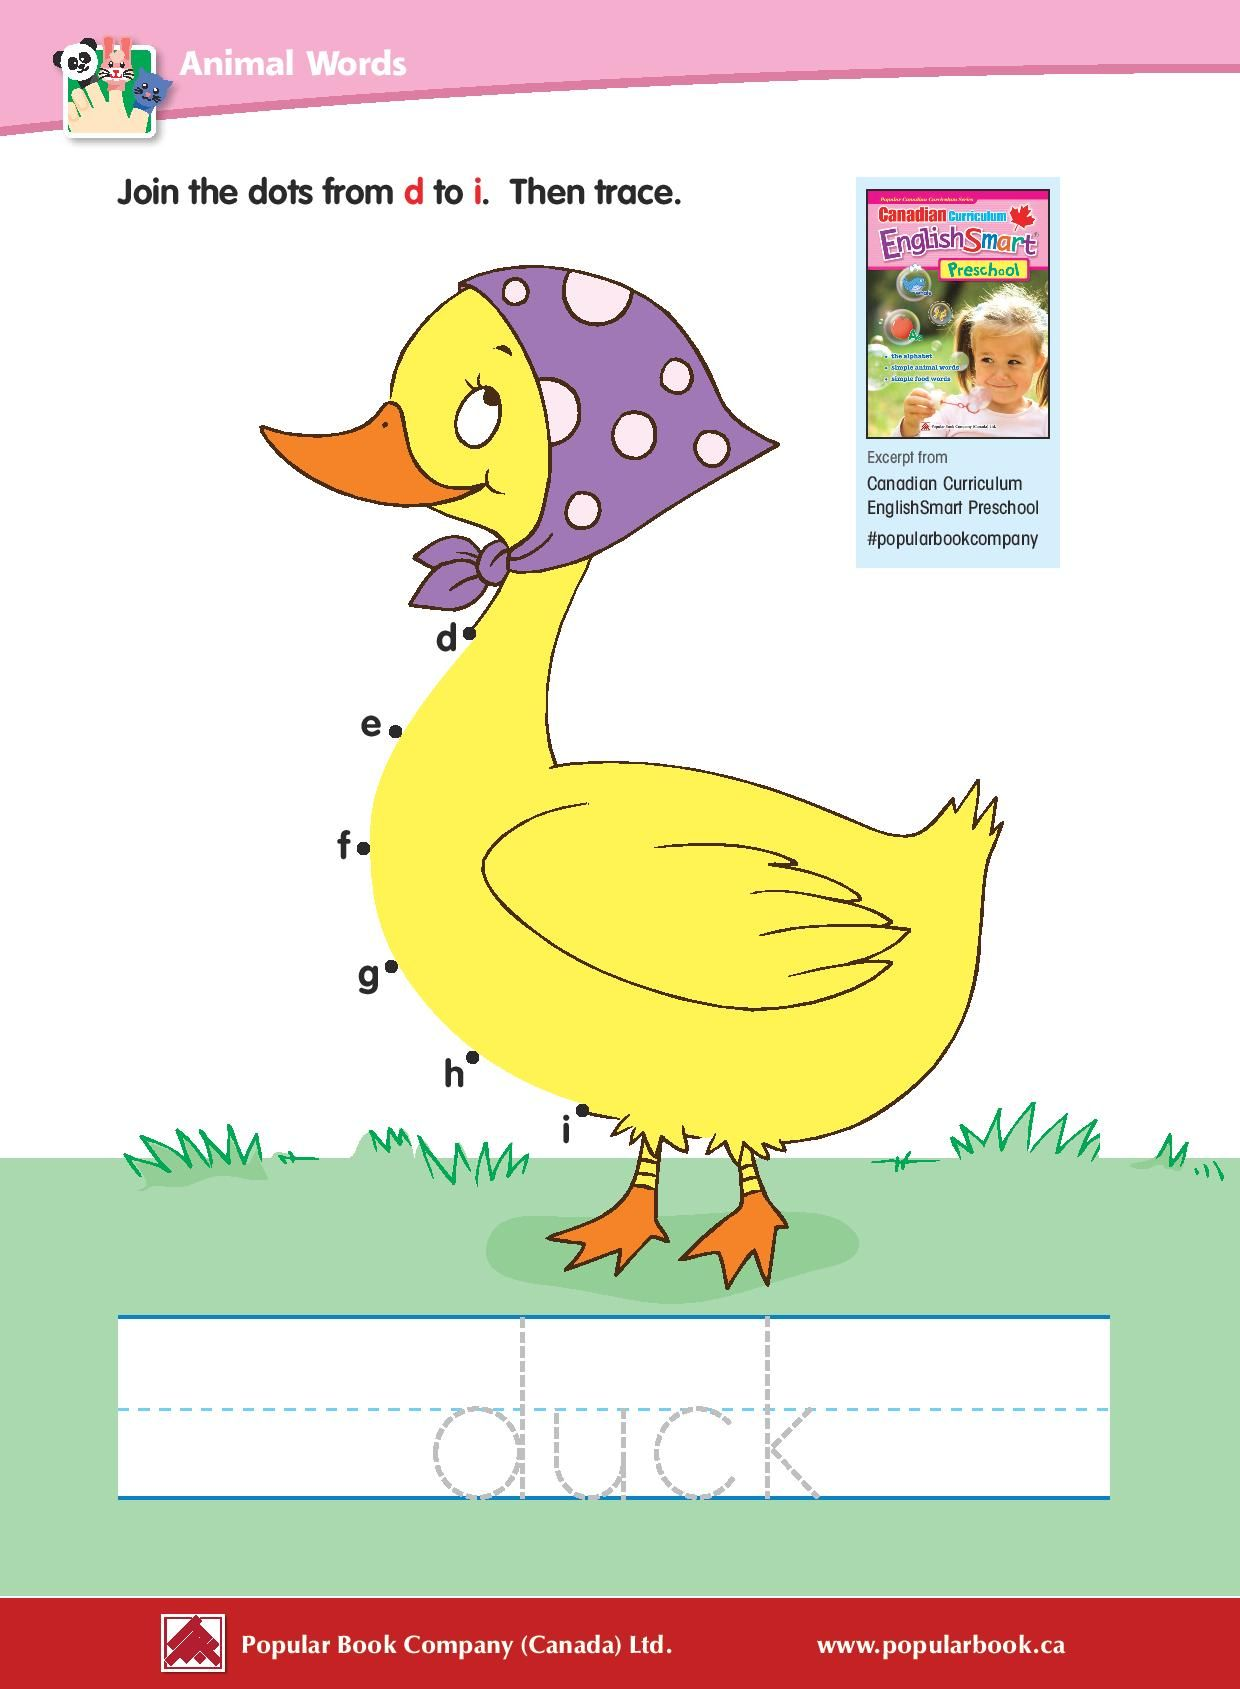 Download The Free Sample Pages From Canadian Curriculum Englishsmart Preschool Canadian